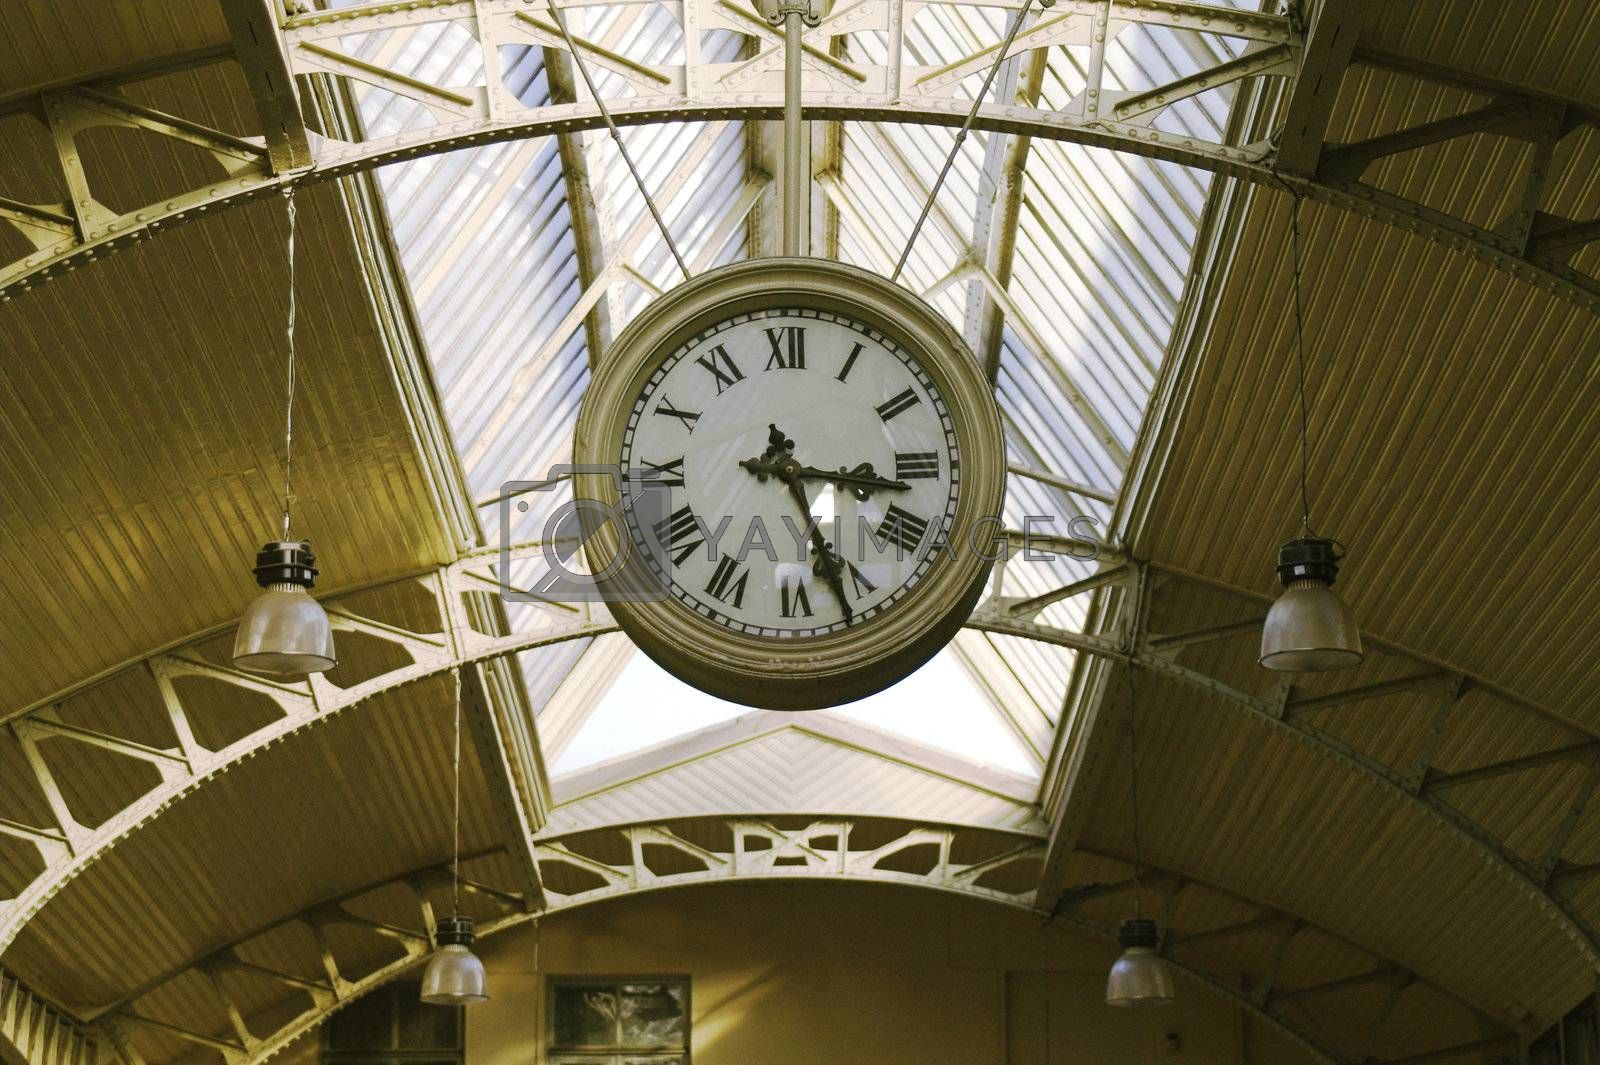 Big hanging public clocks in a railroad station hall, Vitebsk Railroad Station, Saint Petersburg, Russia.